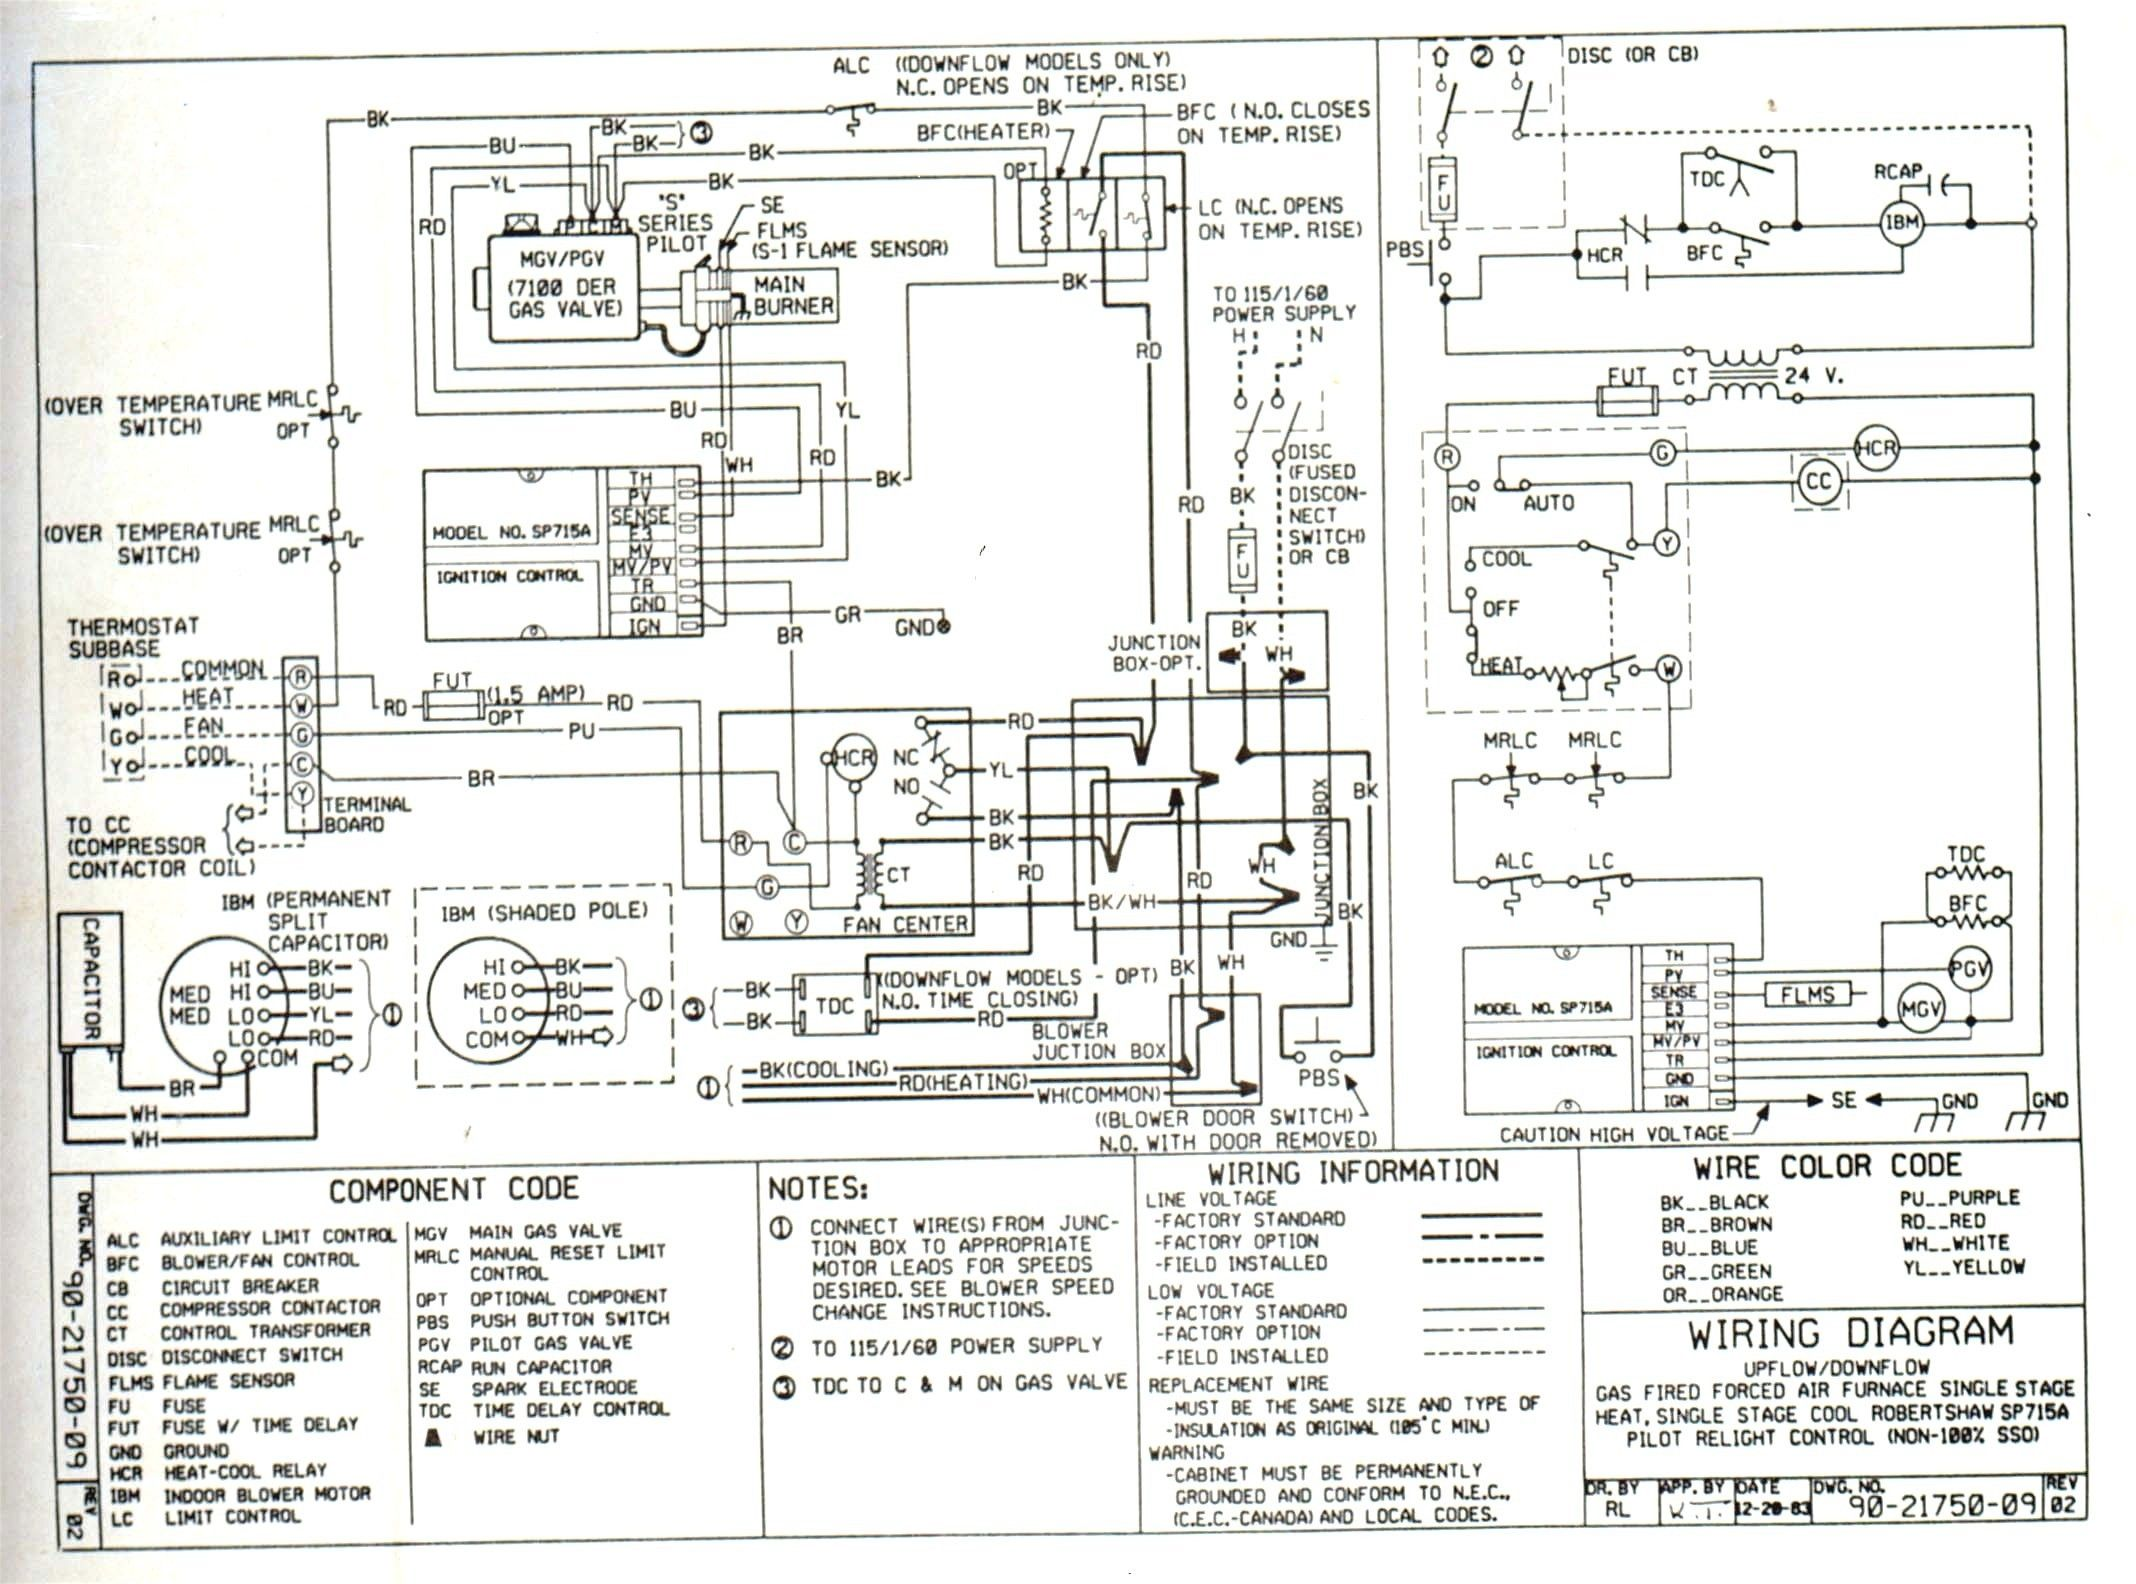 1995 Ford F150 Electric Fuel Pump Wiring Schematic Electrical Diagram Diagram Thermostat Wiring